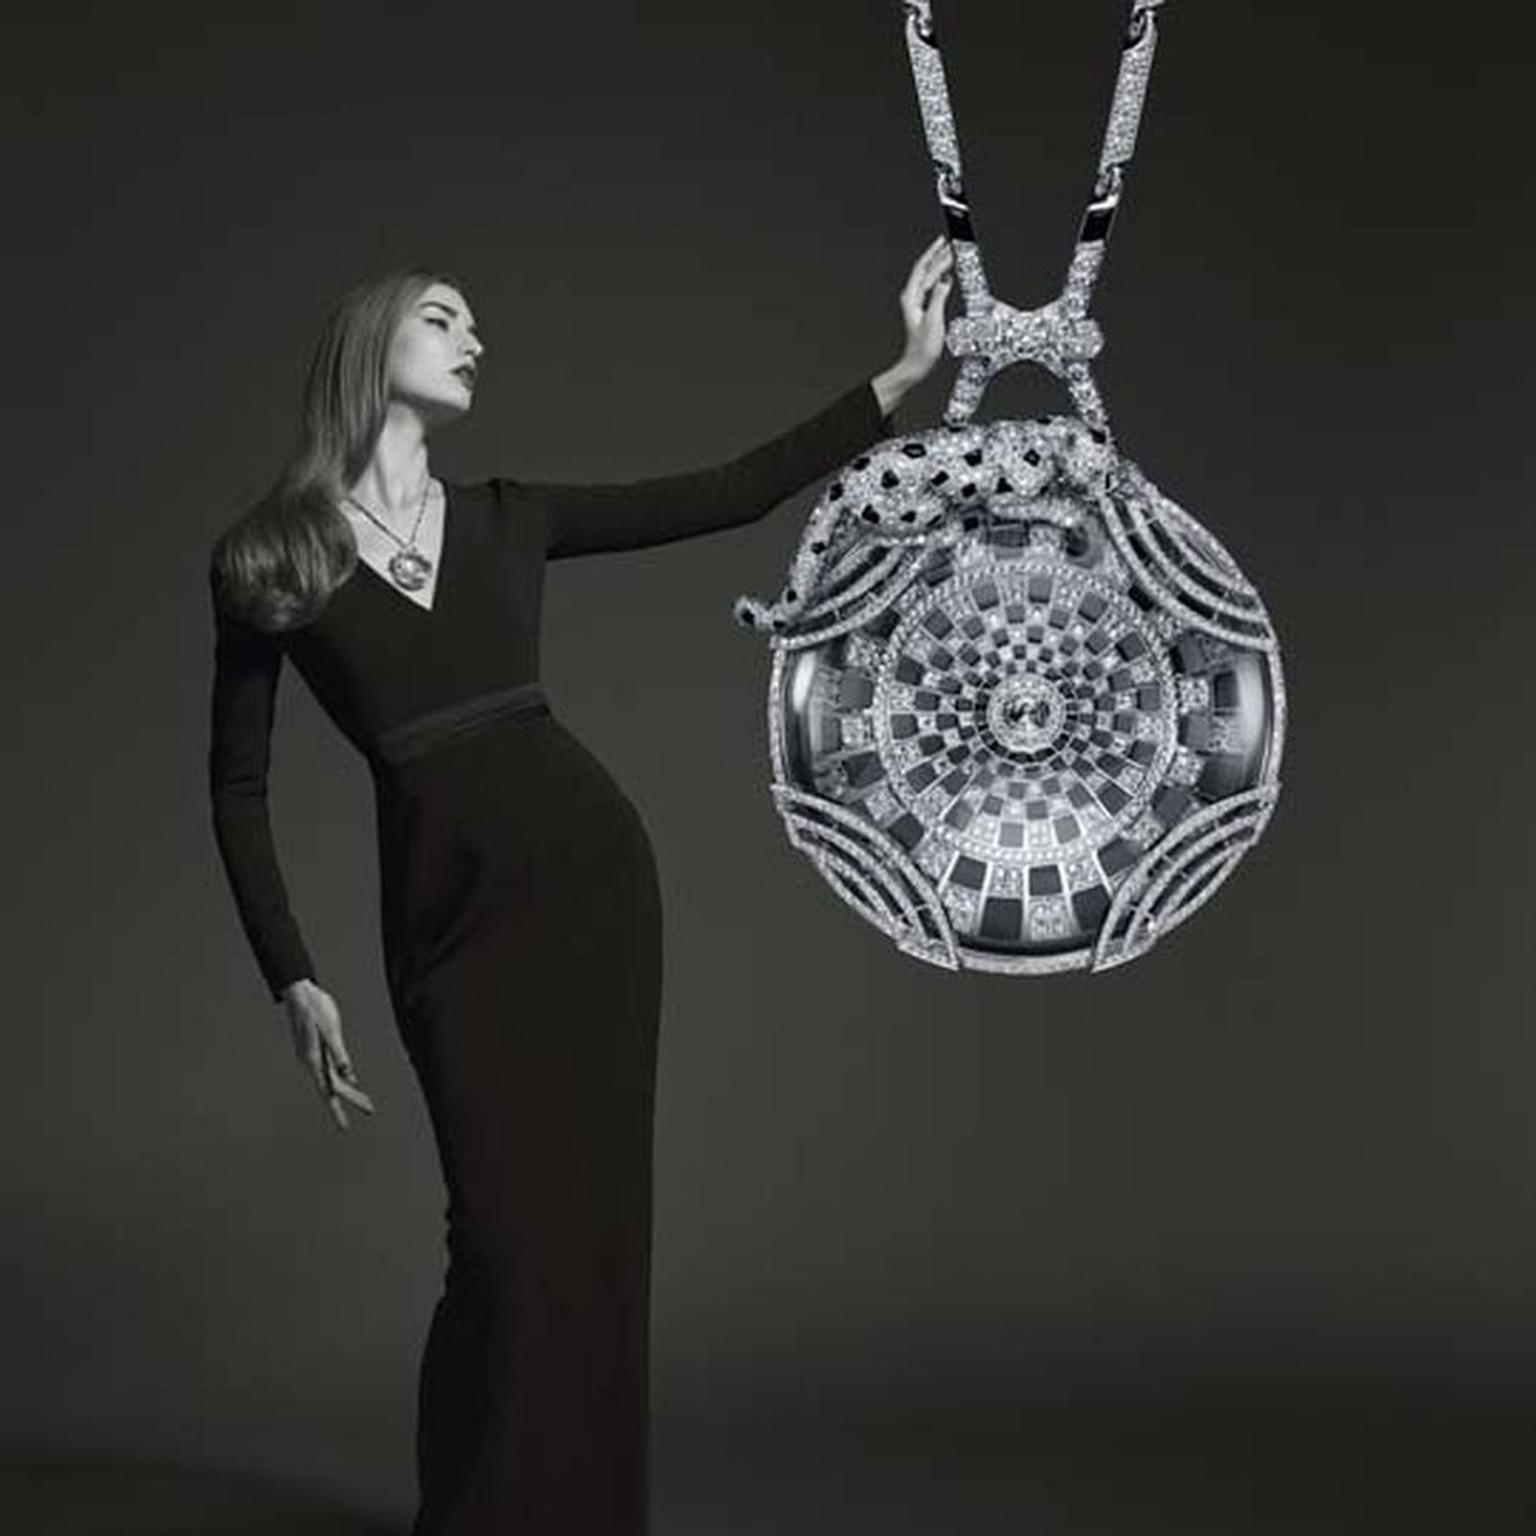 Cartier Panthère de Cartier collection white gold necklace with rock crystal, onyx, emeralds and diamonds.